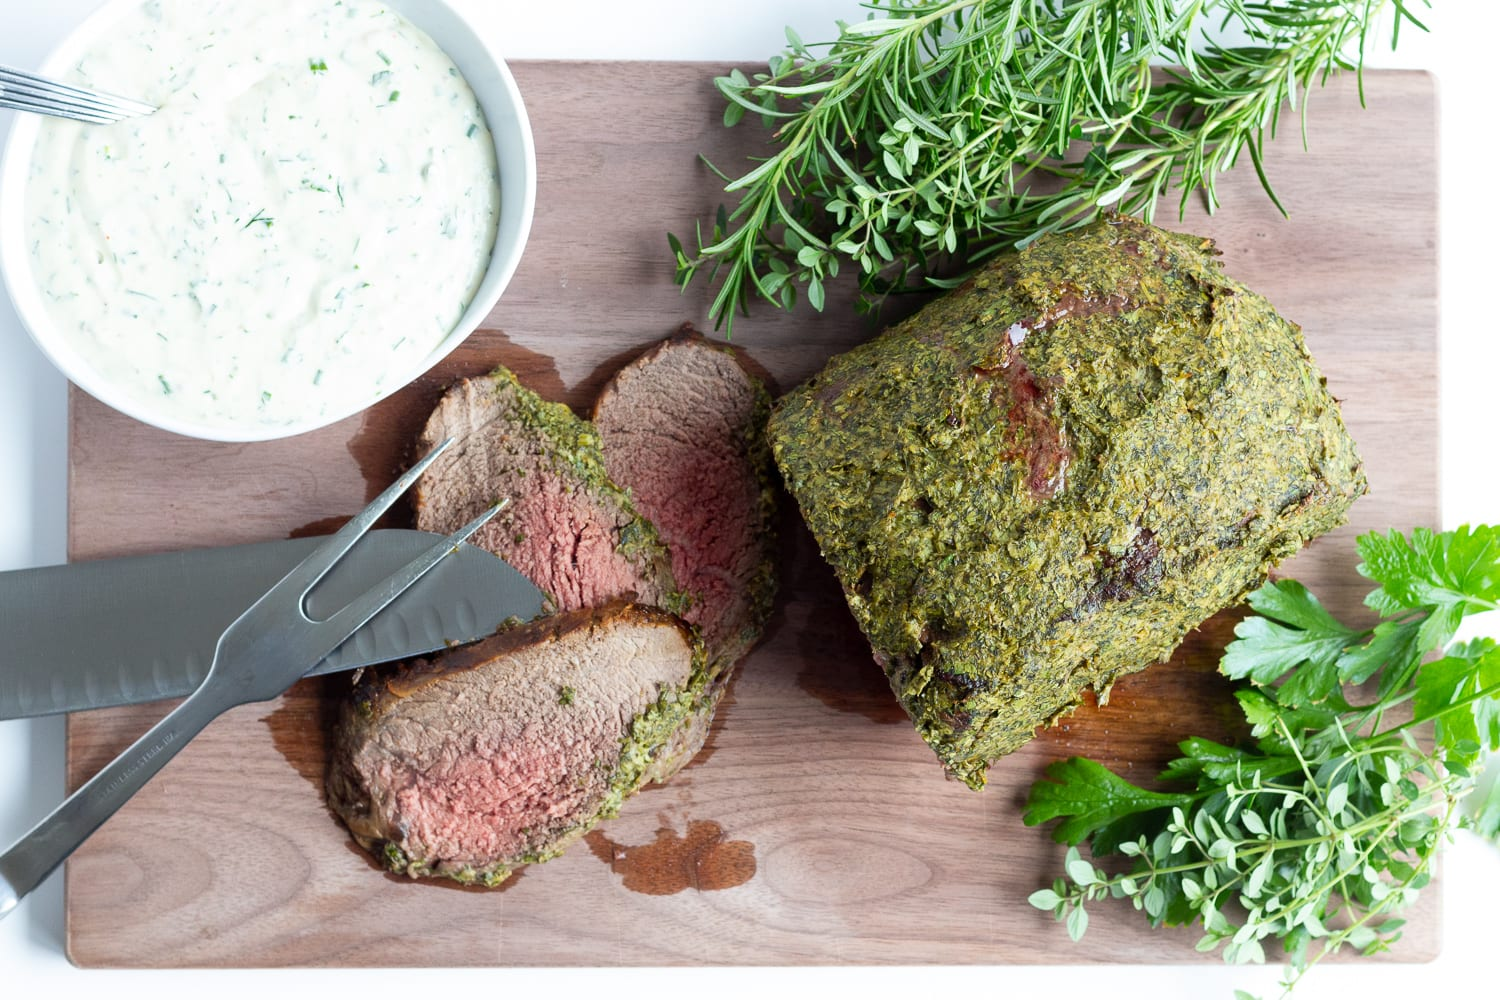 Overhead photo of herb mustard crusted roast beef on a wooden carving board with 3 slices carved off. There are also fresh herbs, bowl of creamy herb sauce and carving utensils laid out on the board.